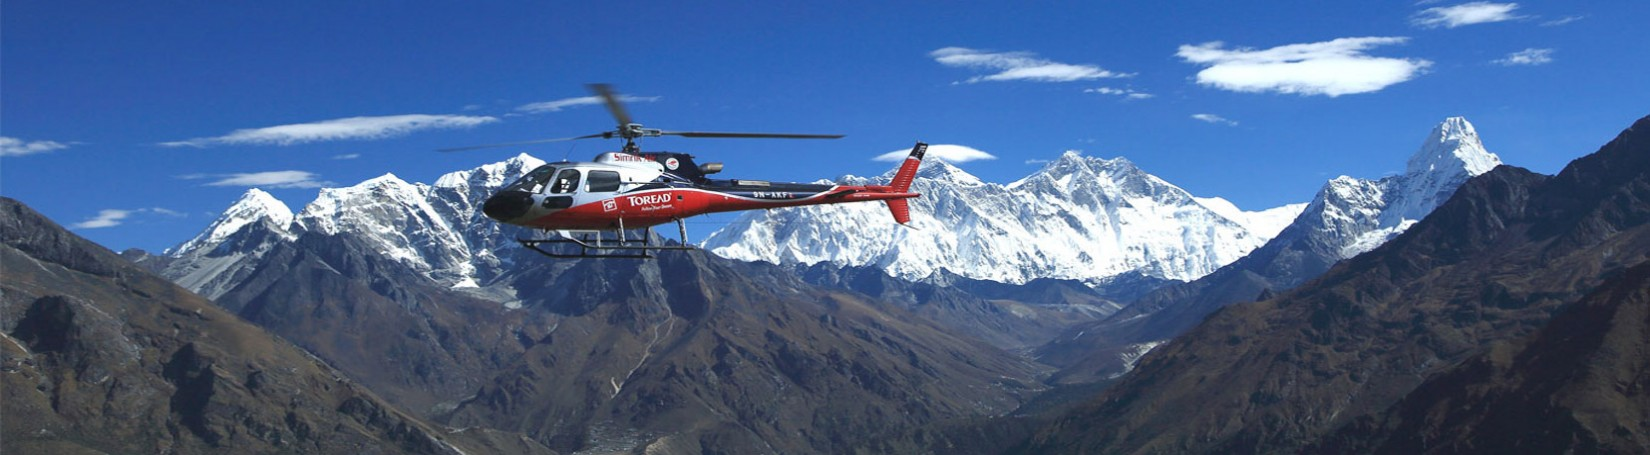 Everest View from Helicopter Tour